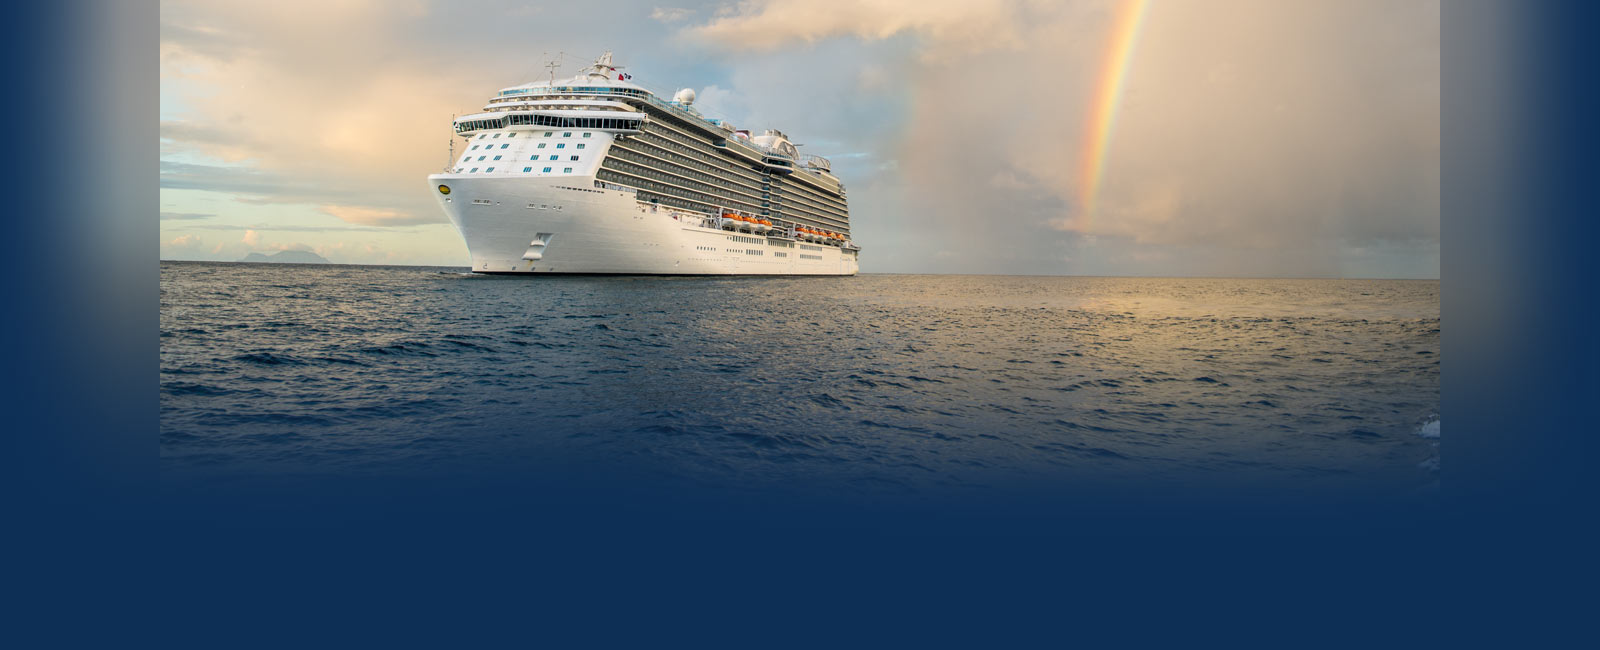 Royal Princess foating on the water with a a rainbow in the background